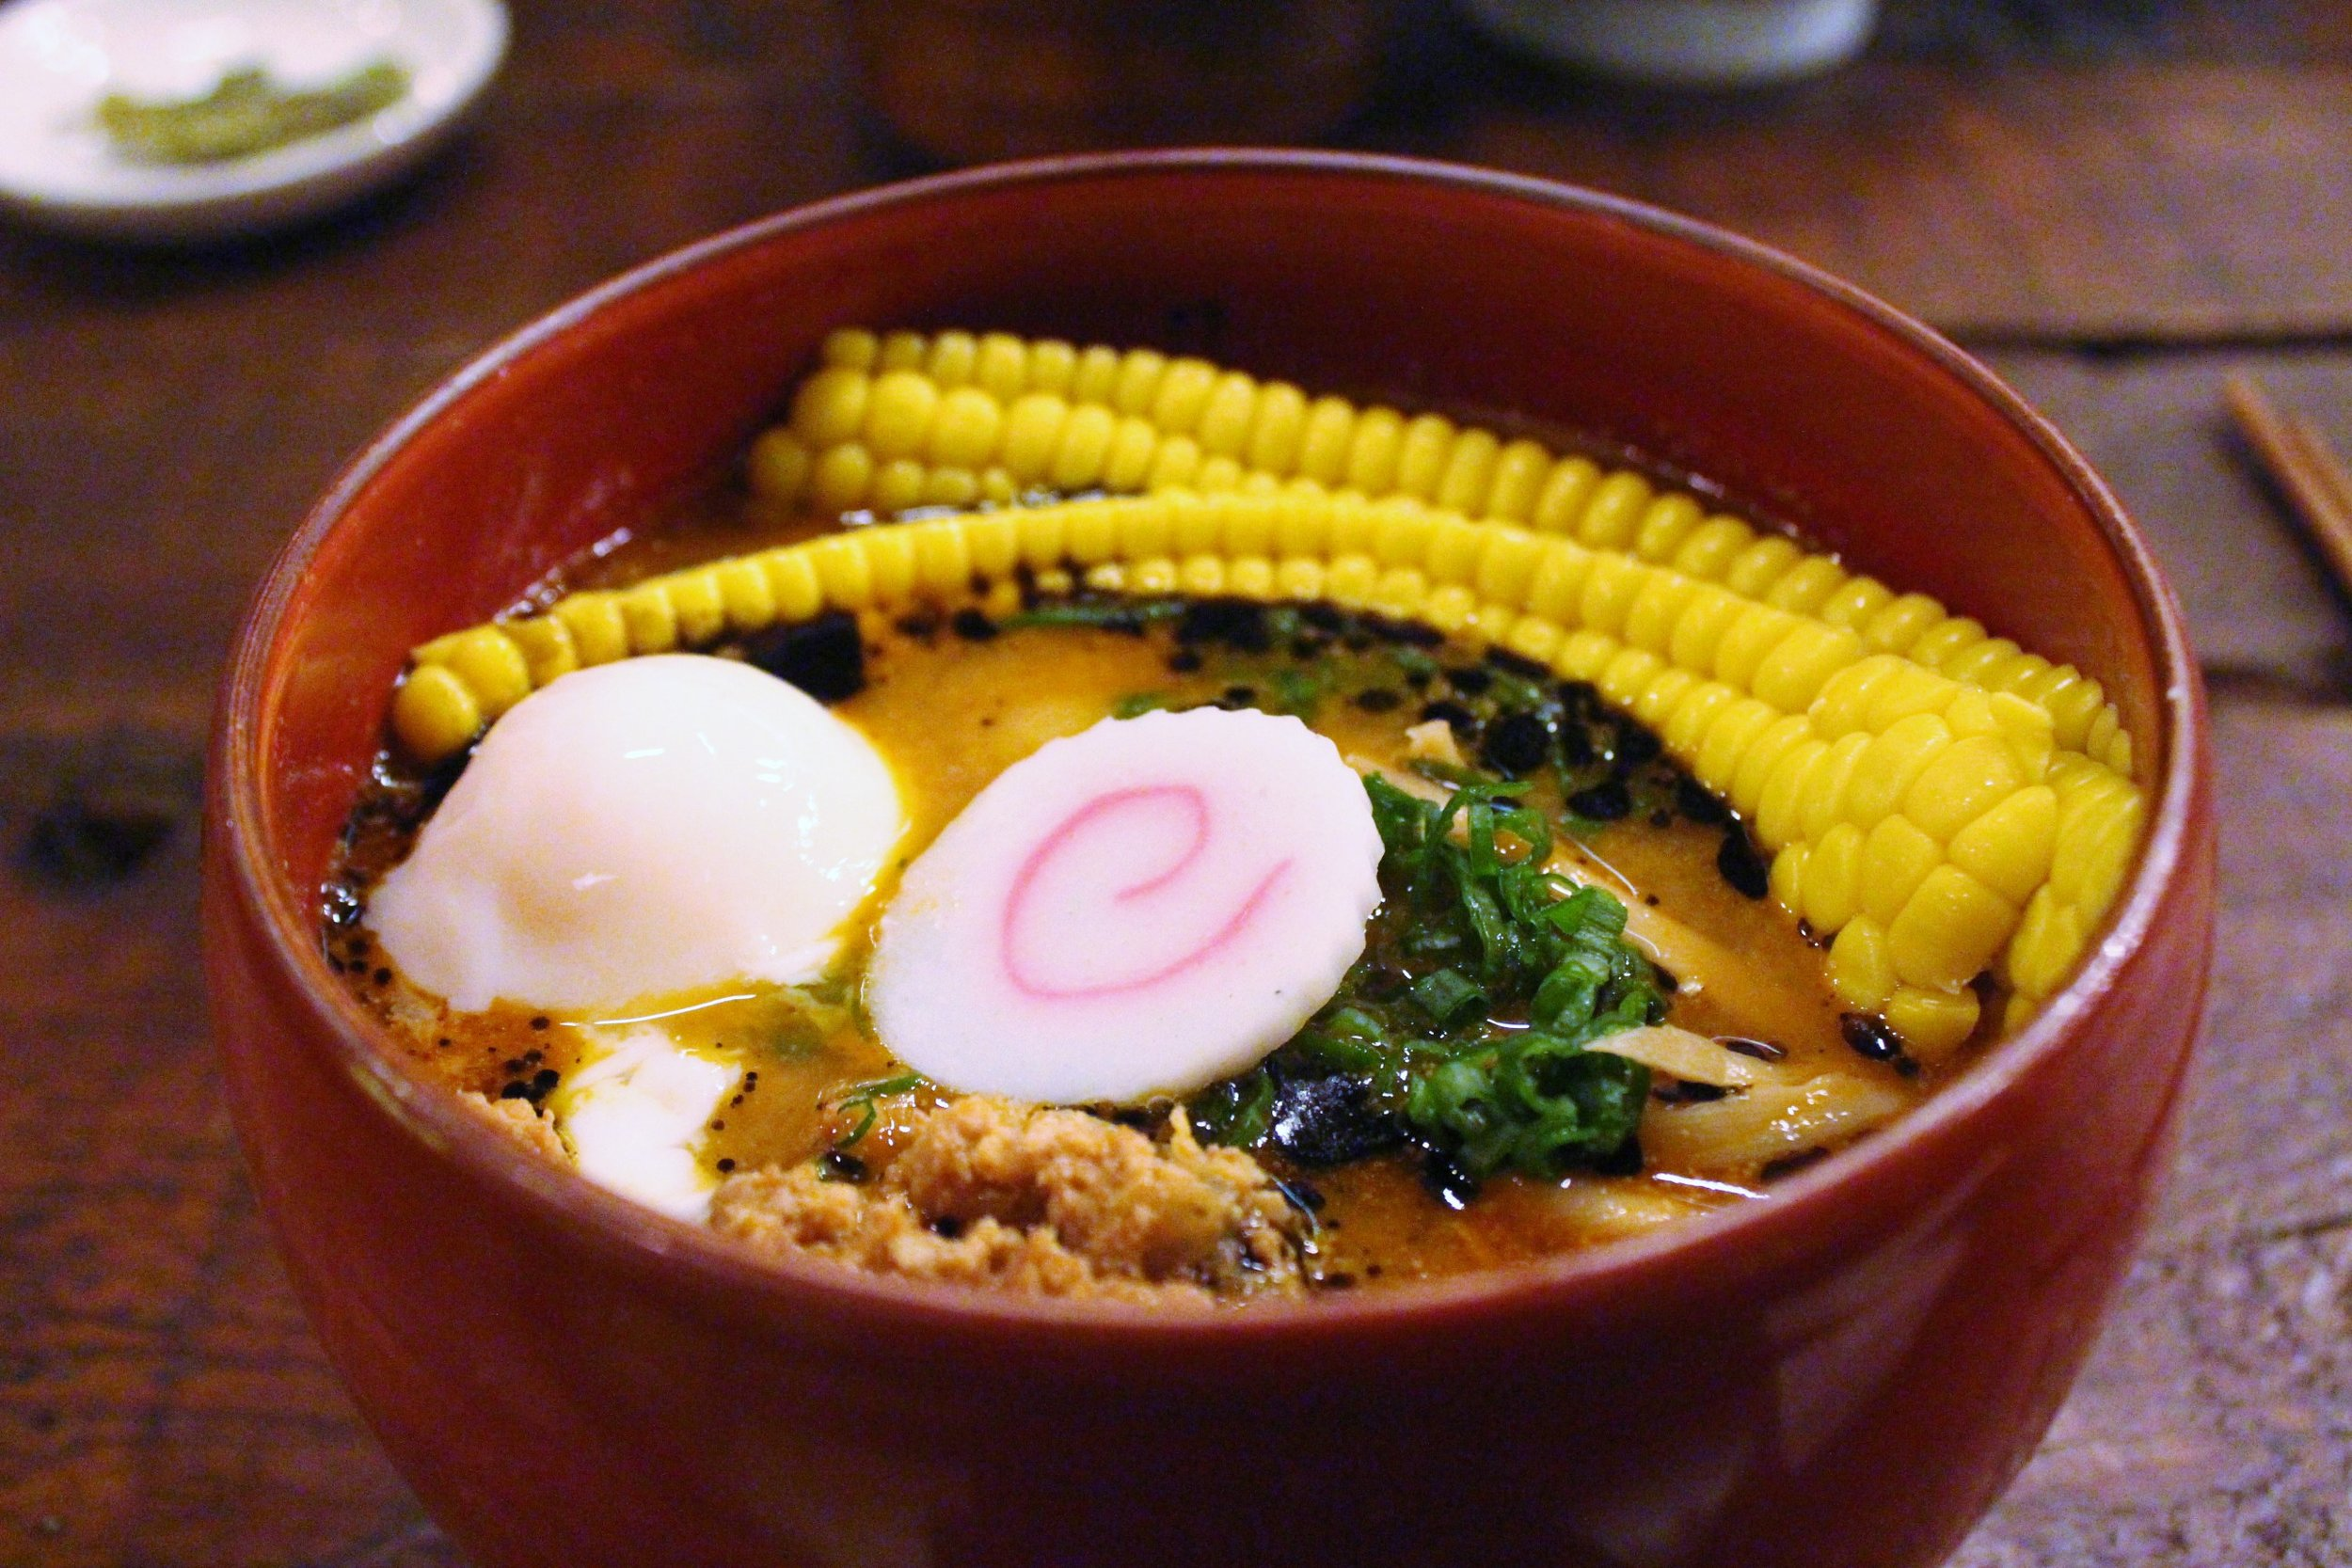 Spicy Miso Ramen: Red Miso and Pork Based Soup